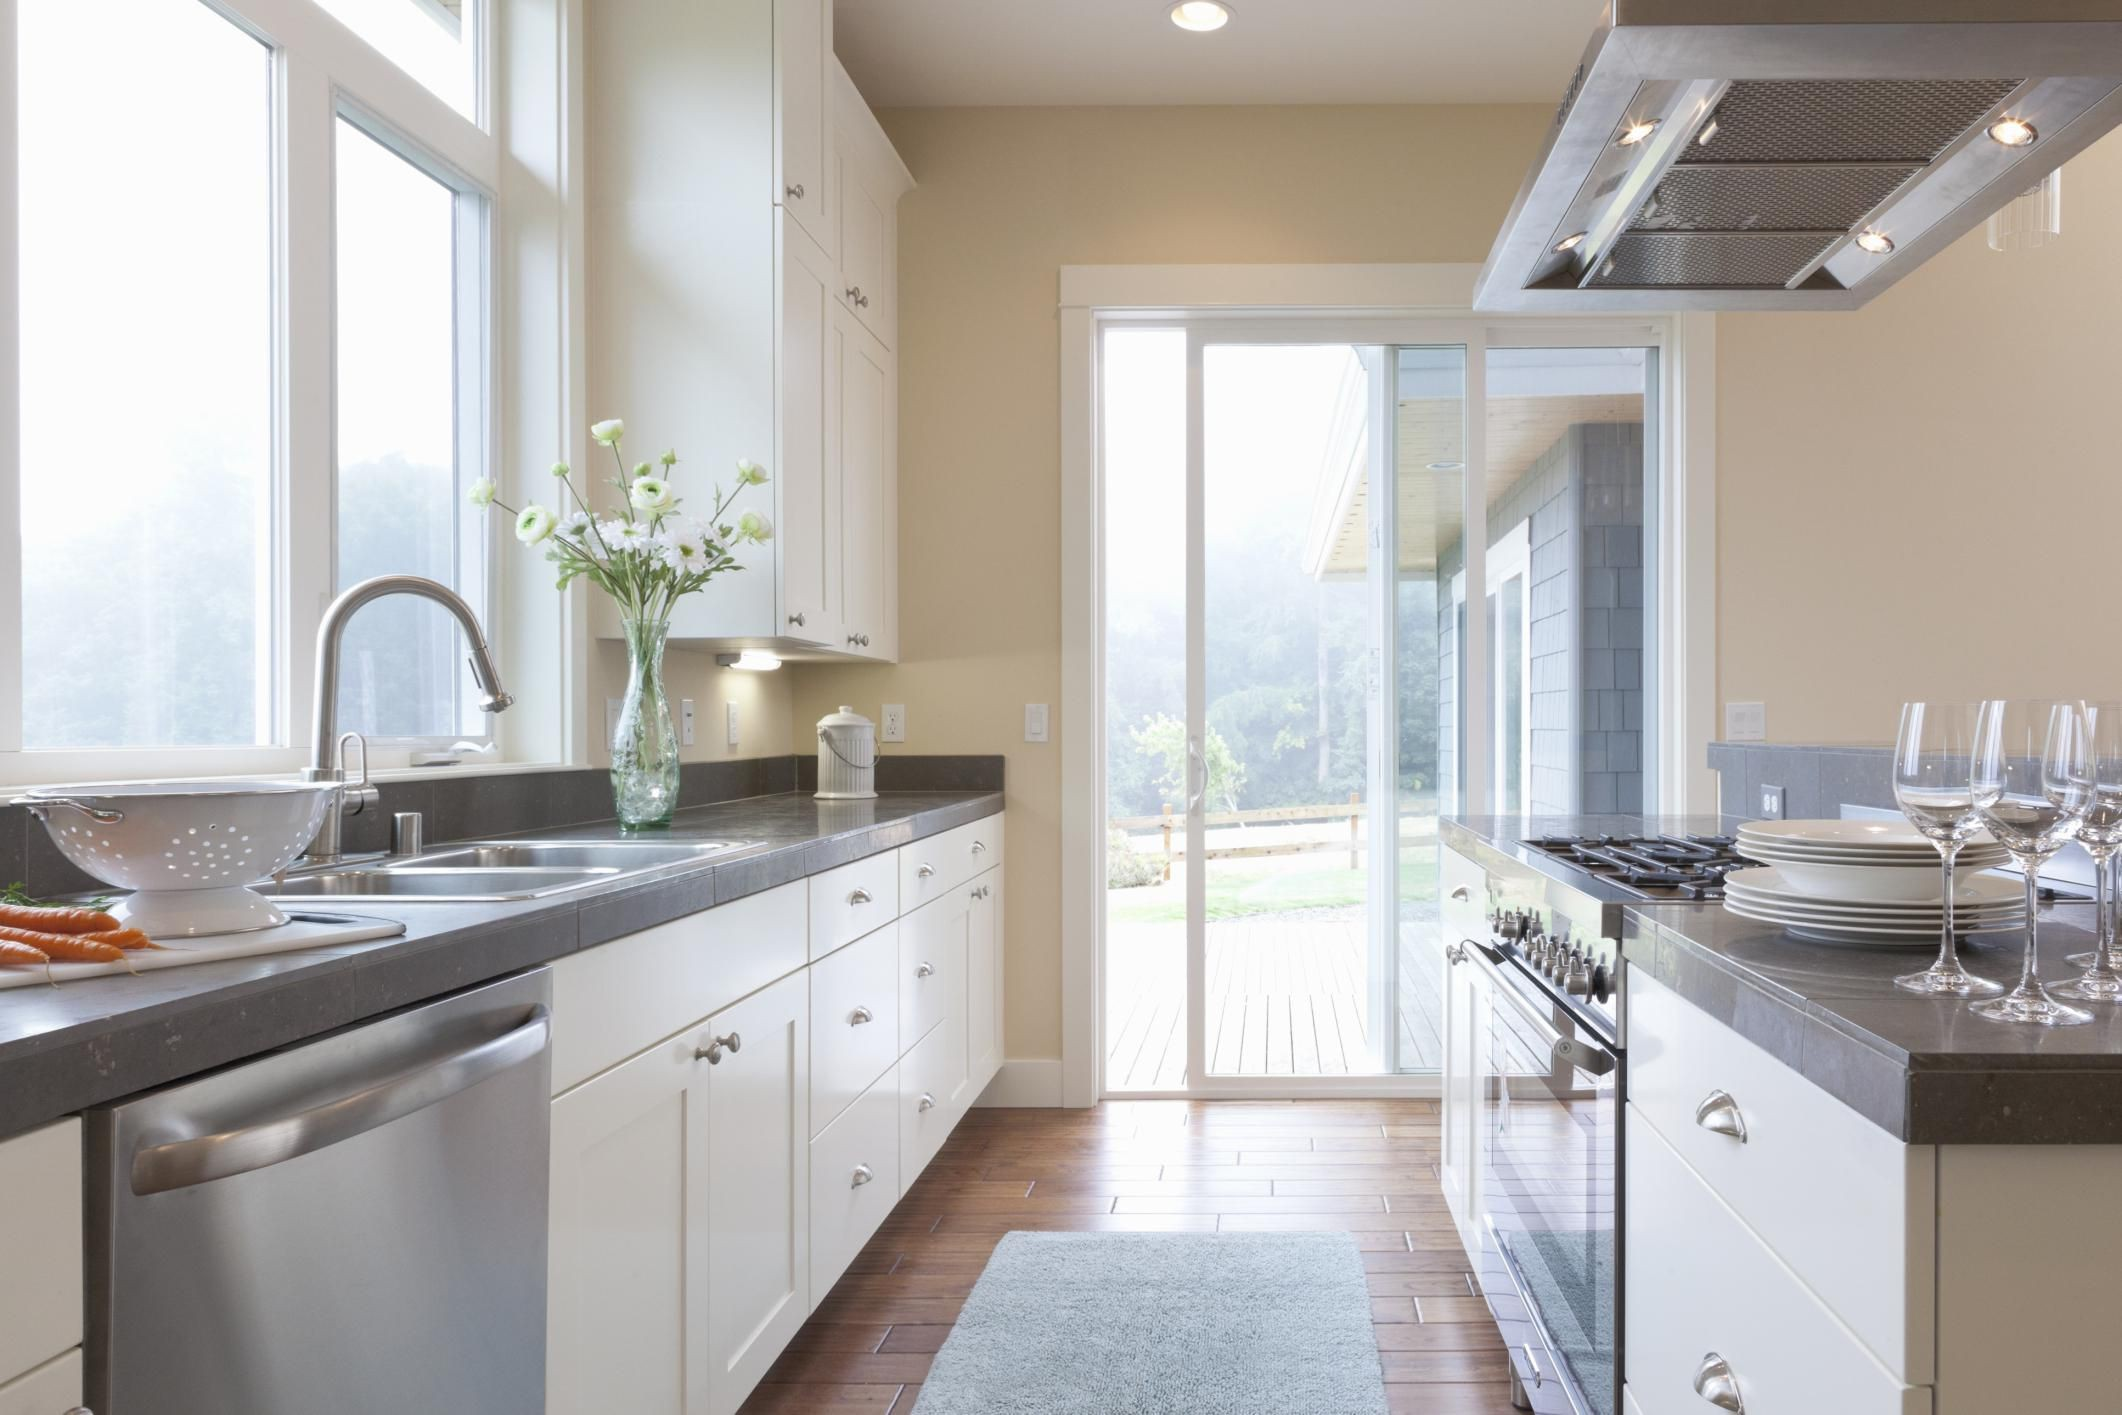 countertop cabinet height  The Optimal Kitchen Countertop Height - countertop cabinet height